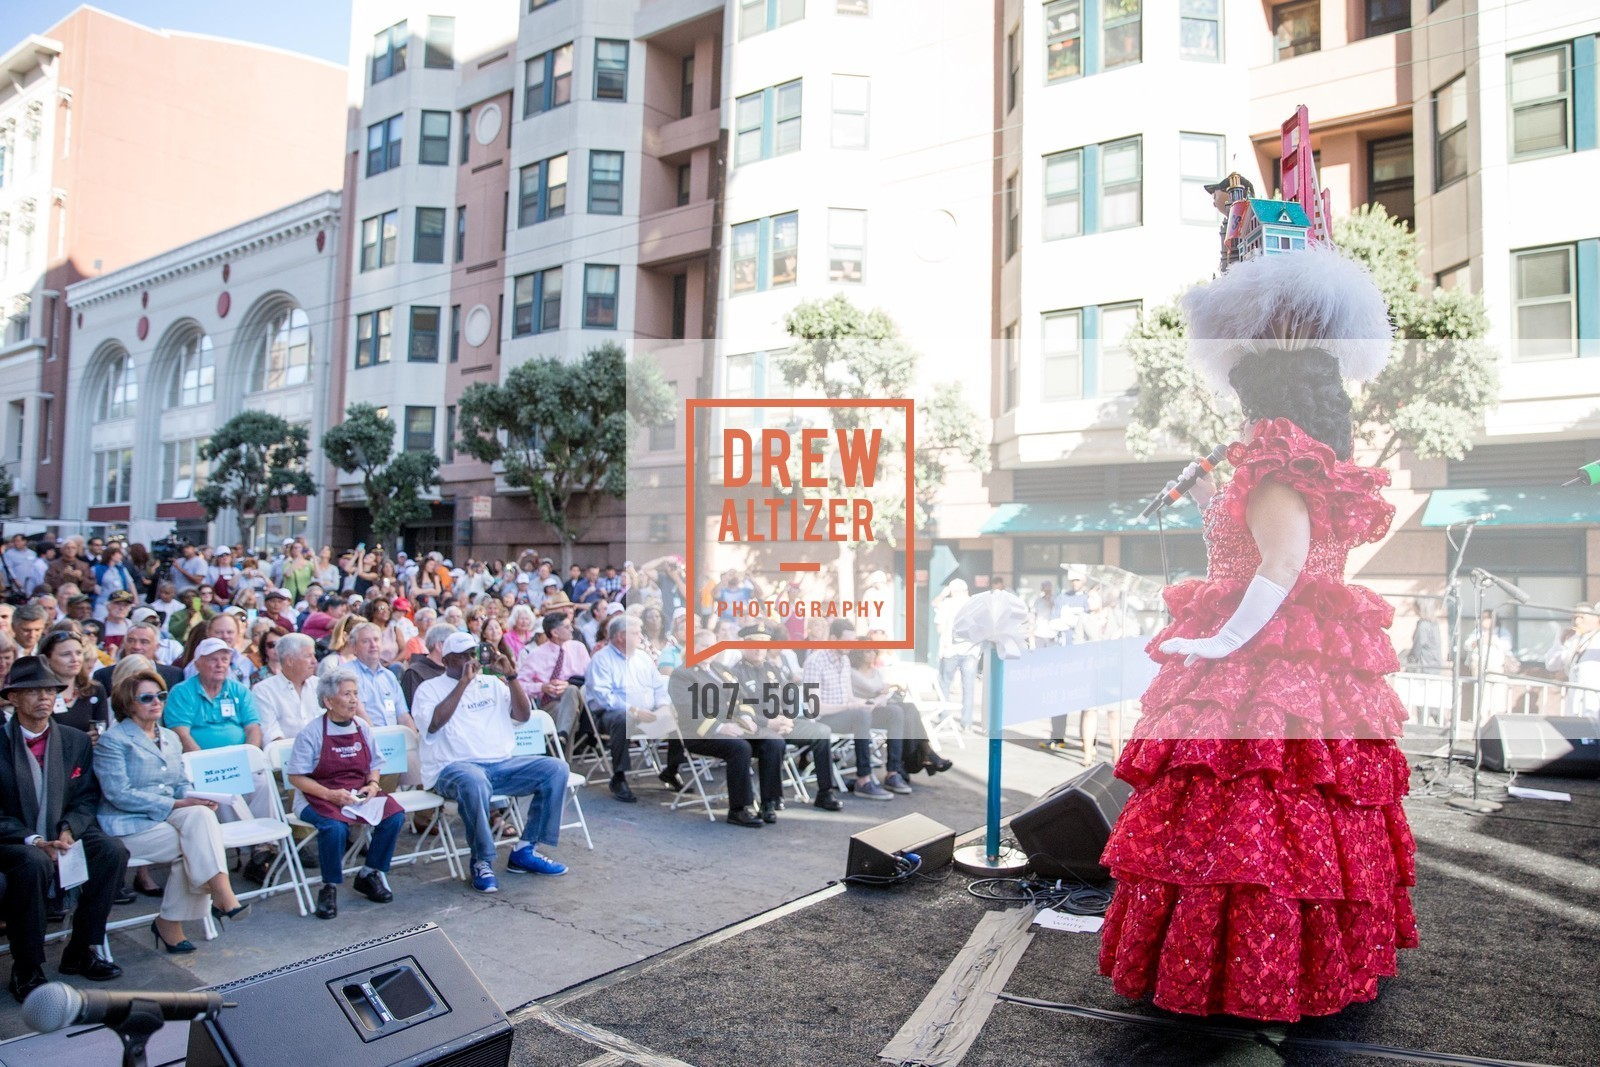 Beach Blanket Babylon, ST. ANTHONY'S Dining Room Ribbon Cutting Ceremony, US, October 5th, 2014,Drew Altizer, Drew Altizer Photography, full-service event agency, private events, San Francisco photographer, photographer California